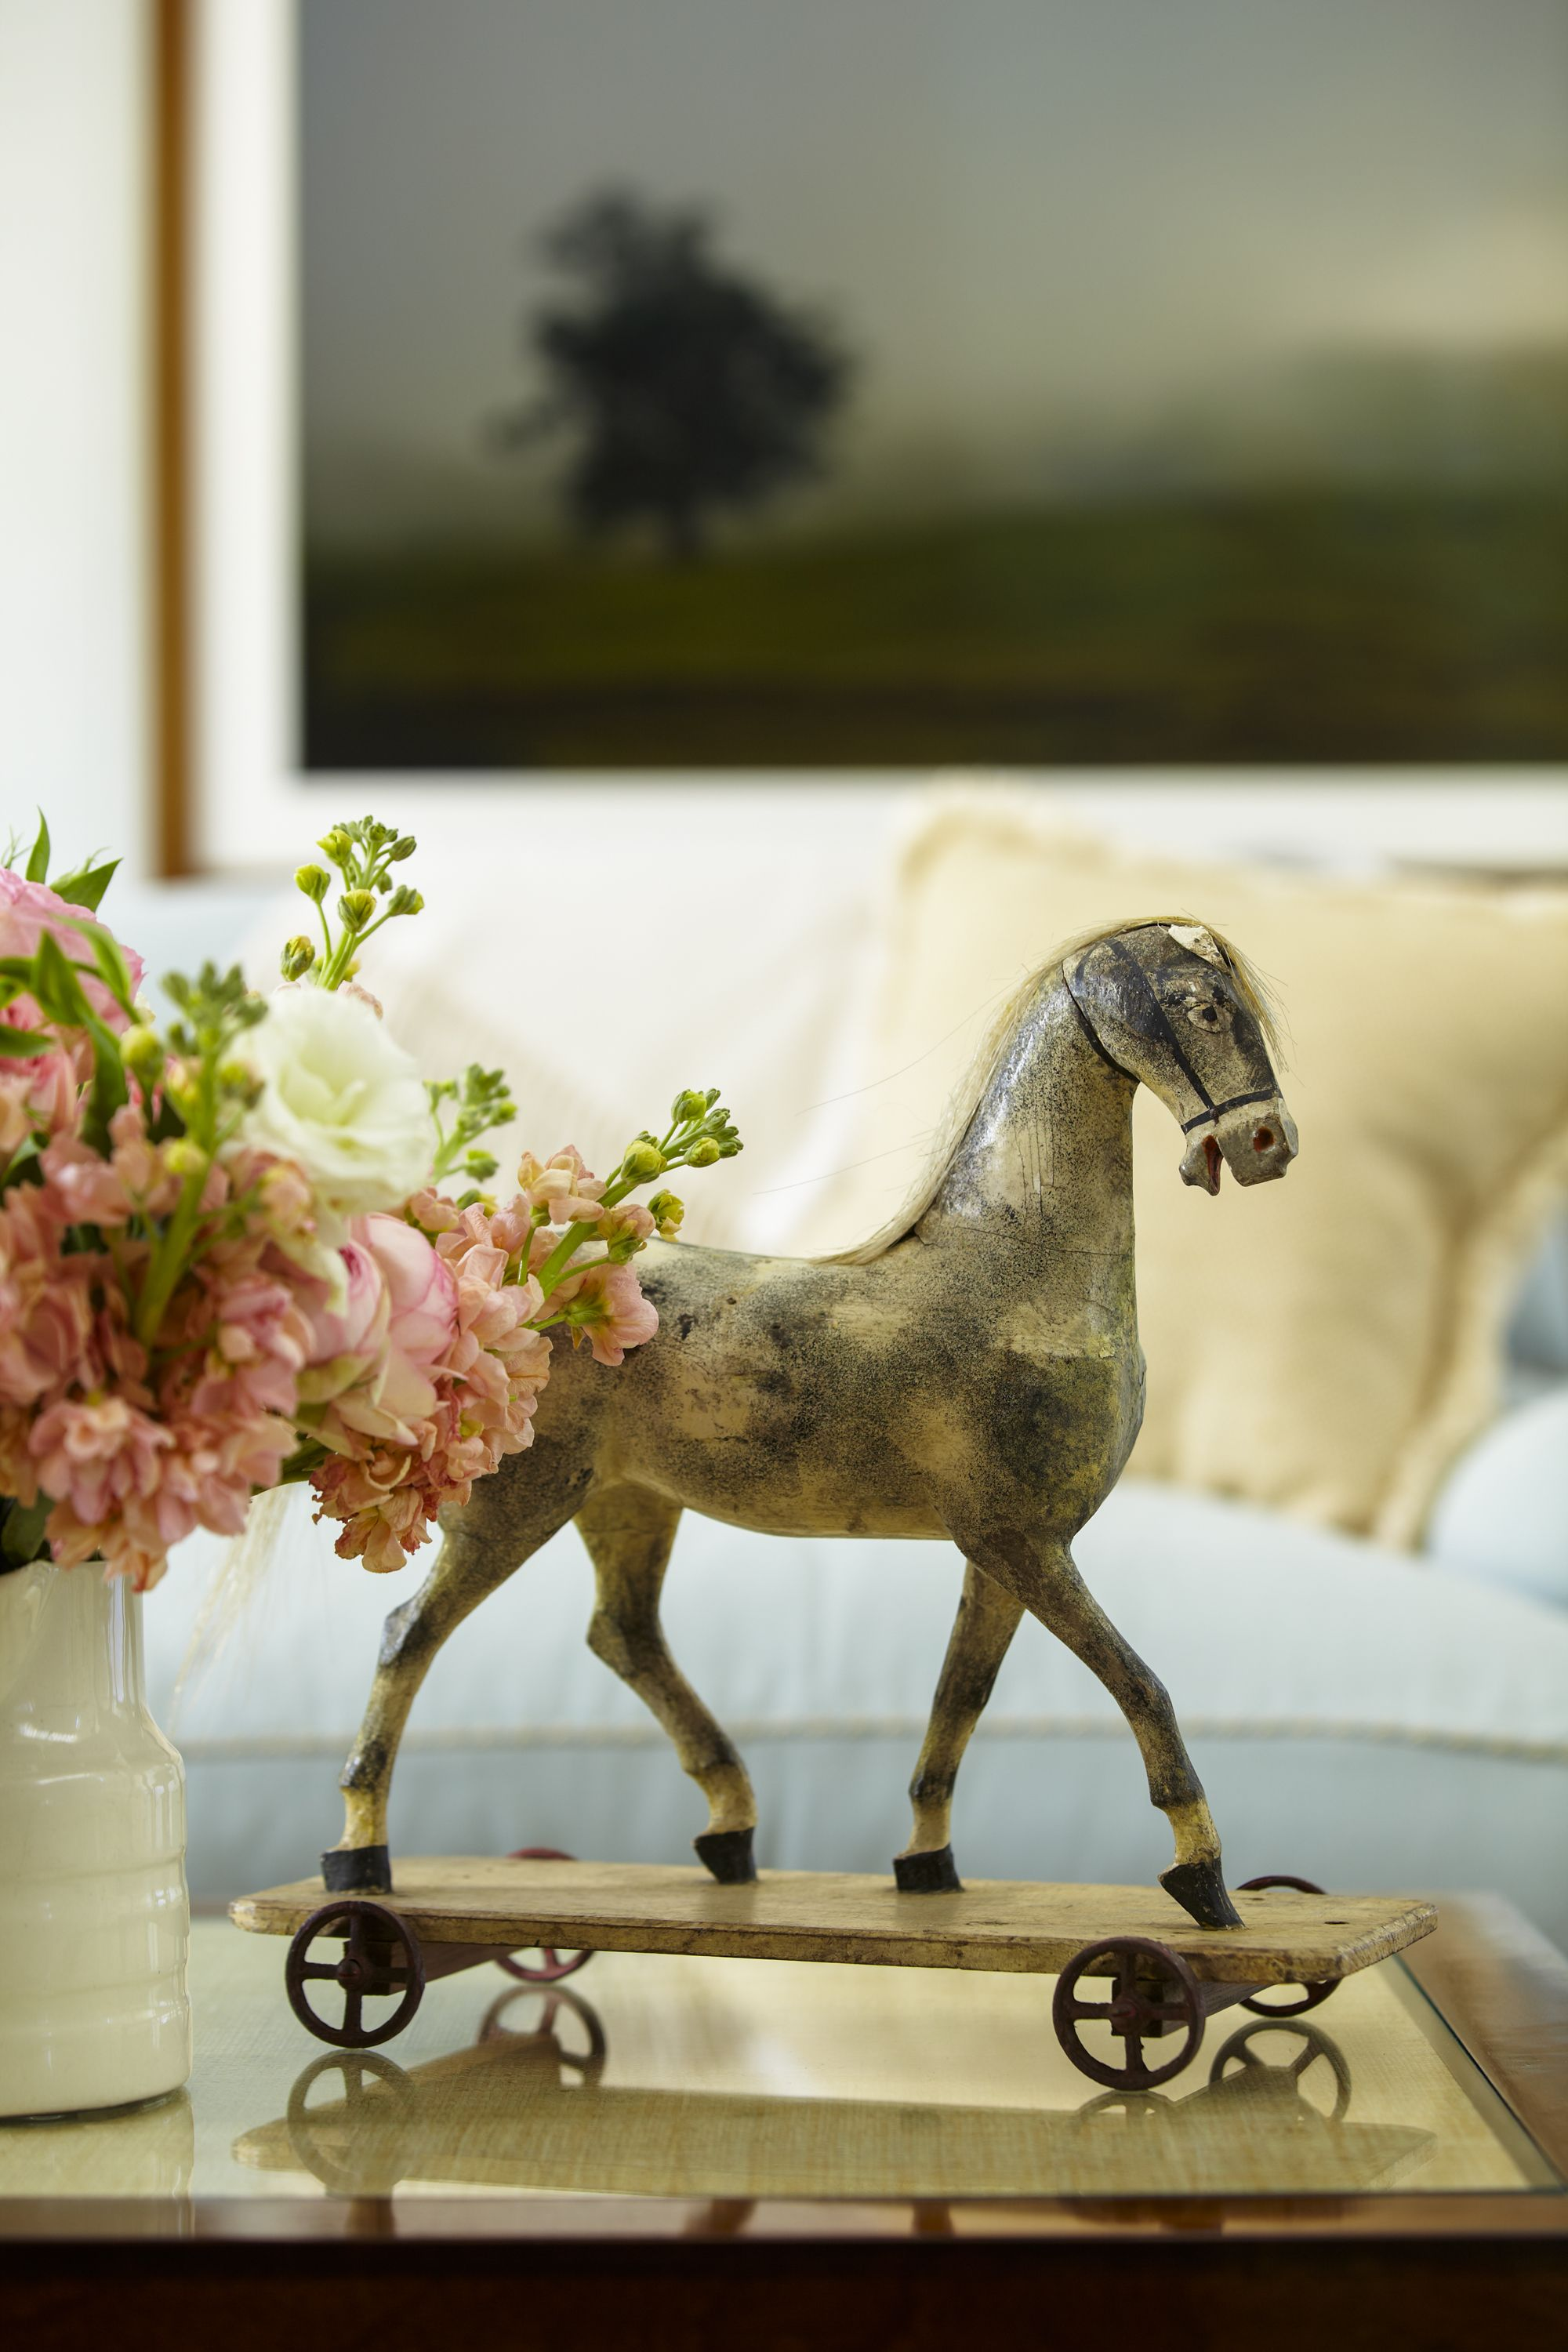 Wonderful Antique Pull Toy Finds Rightful Place As Treasured Decor  # Muebles Cuquins